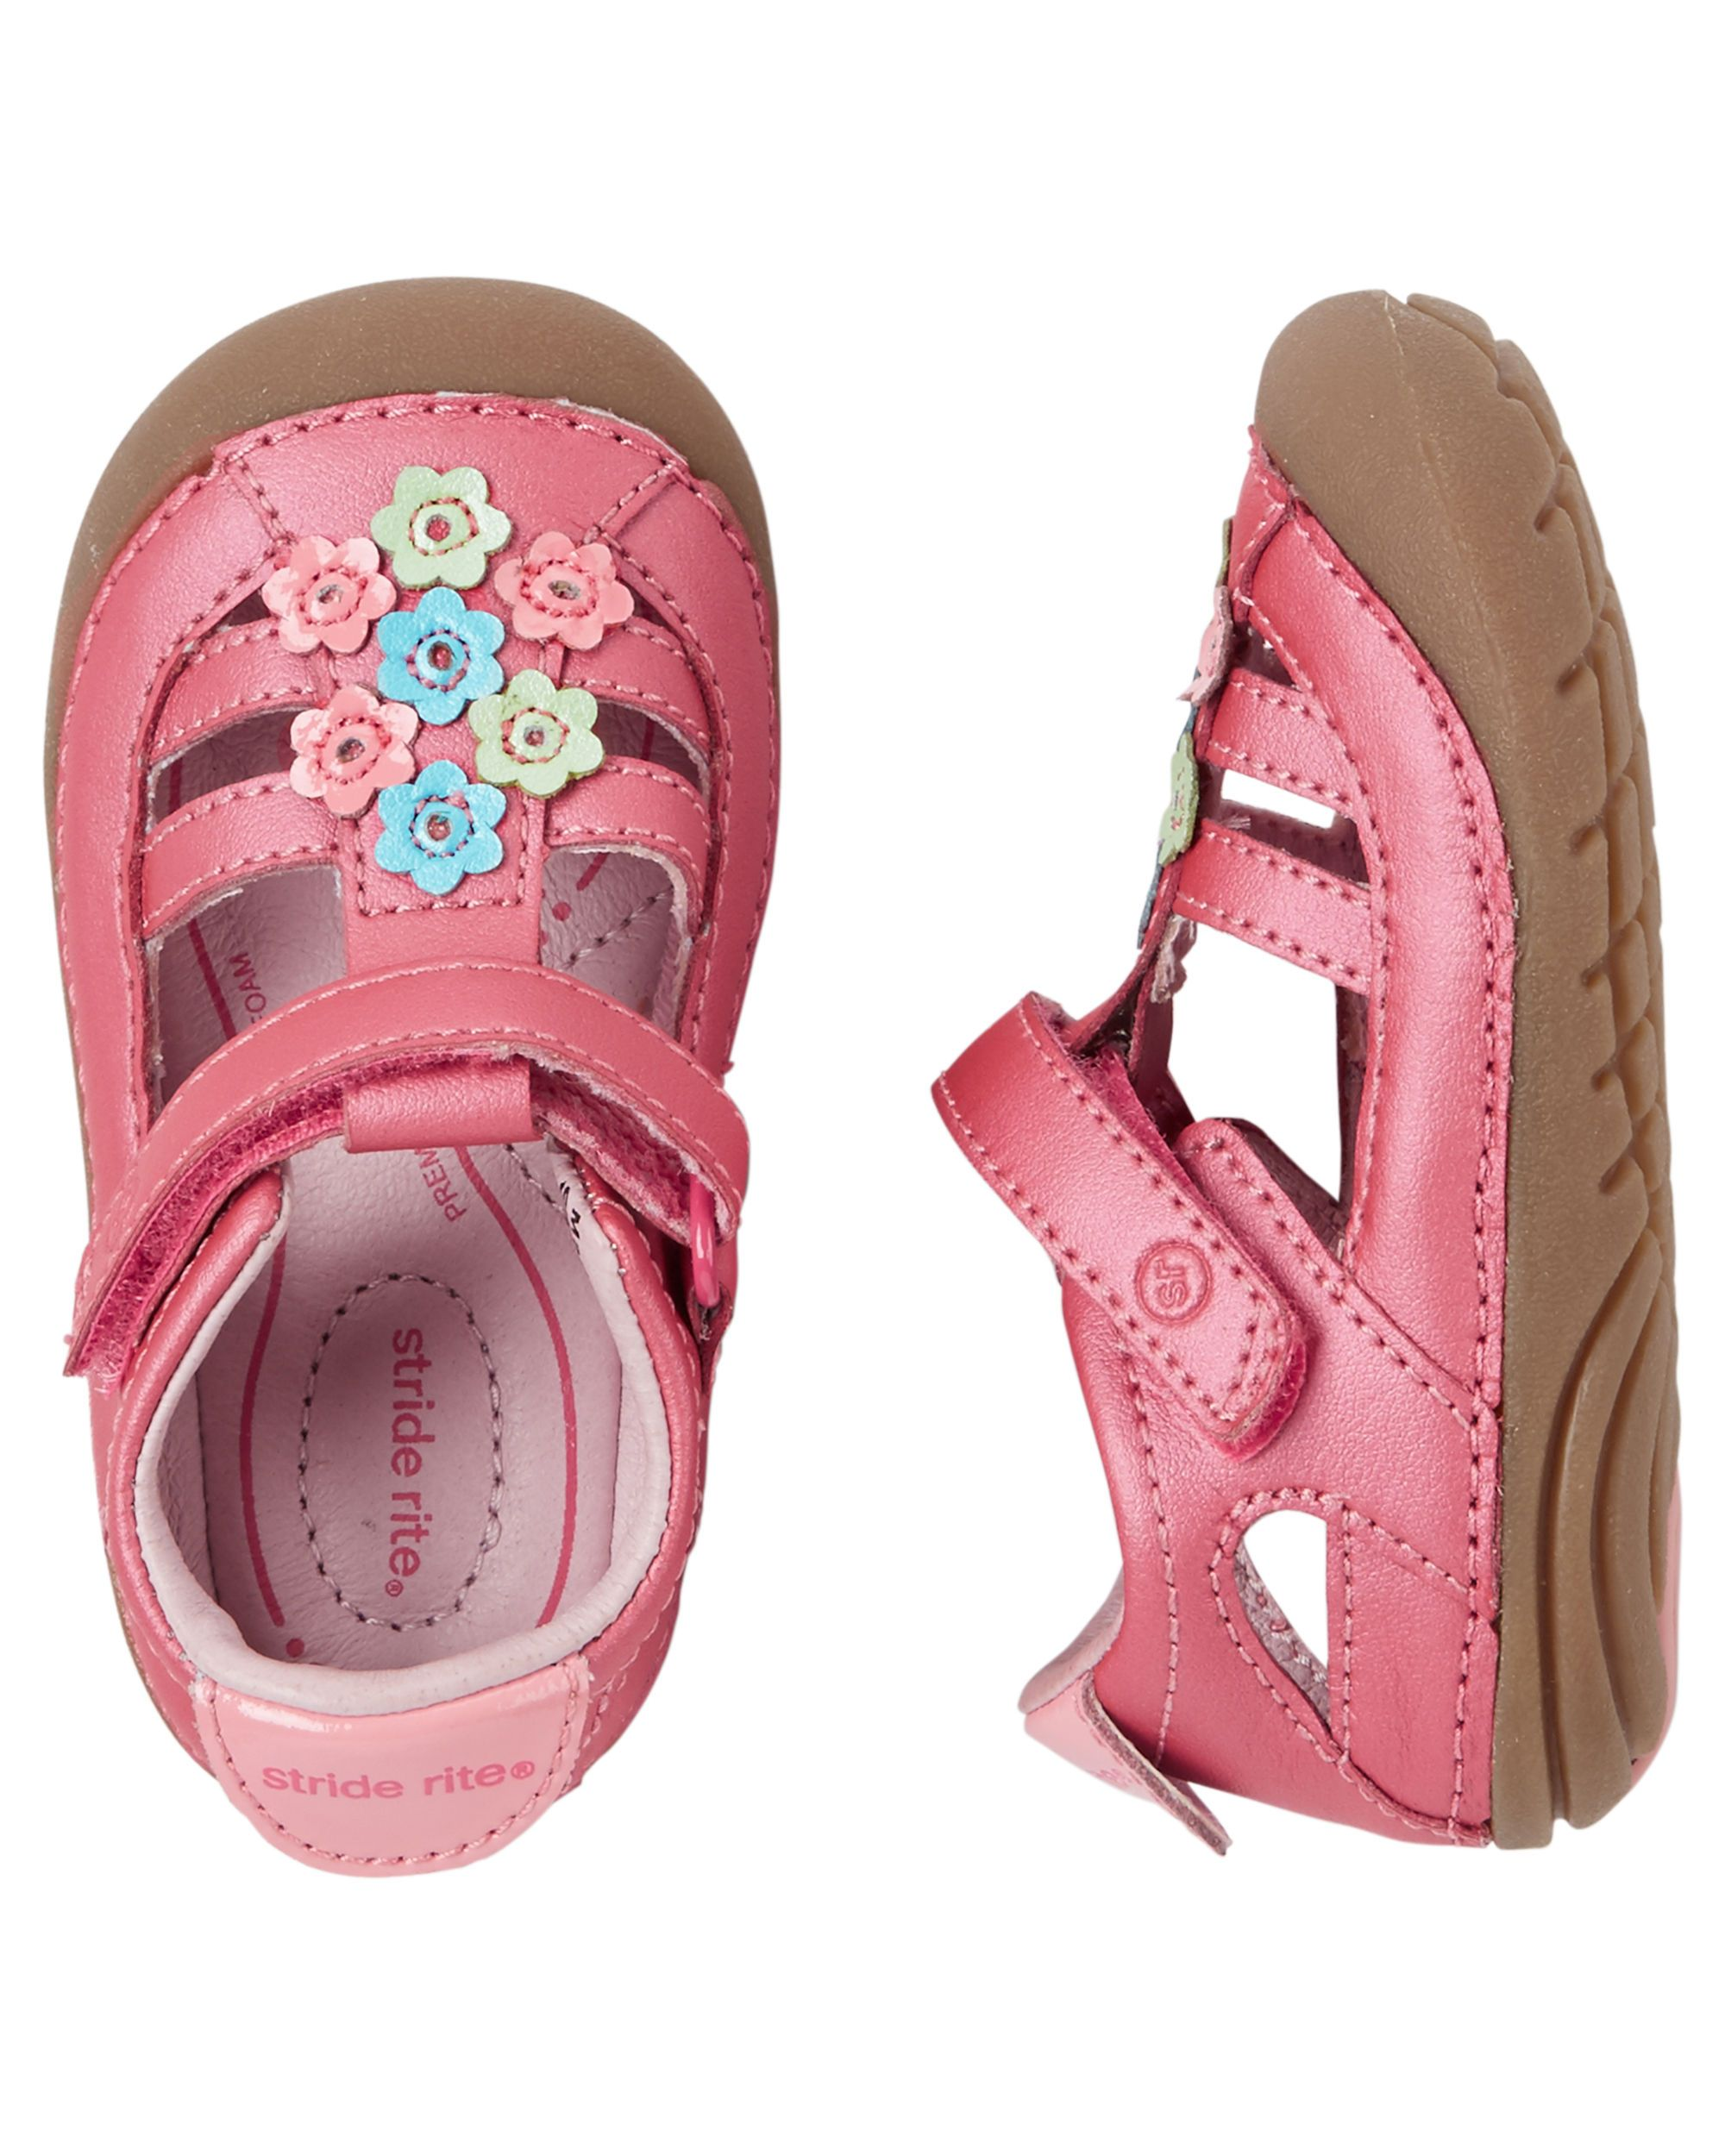 Stride Rite Soft Motion Luisa Sandal